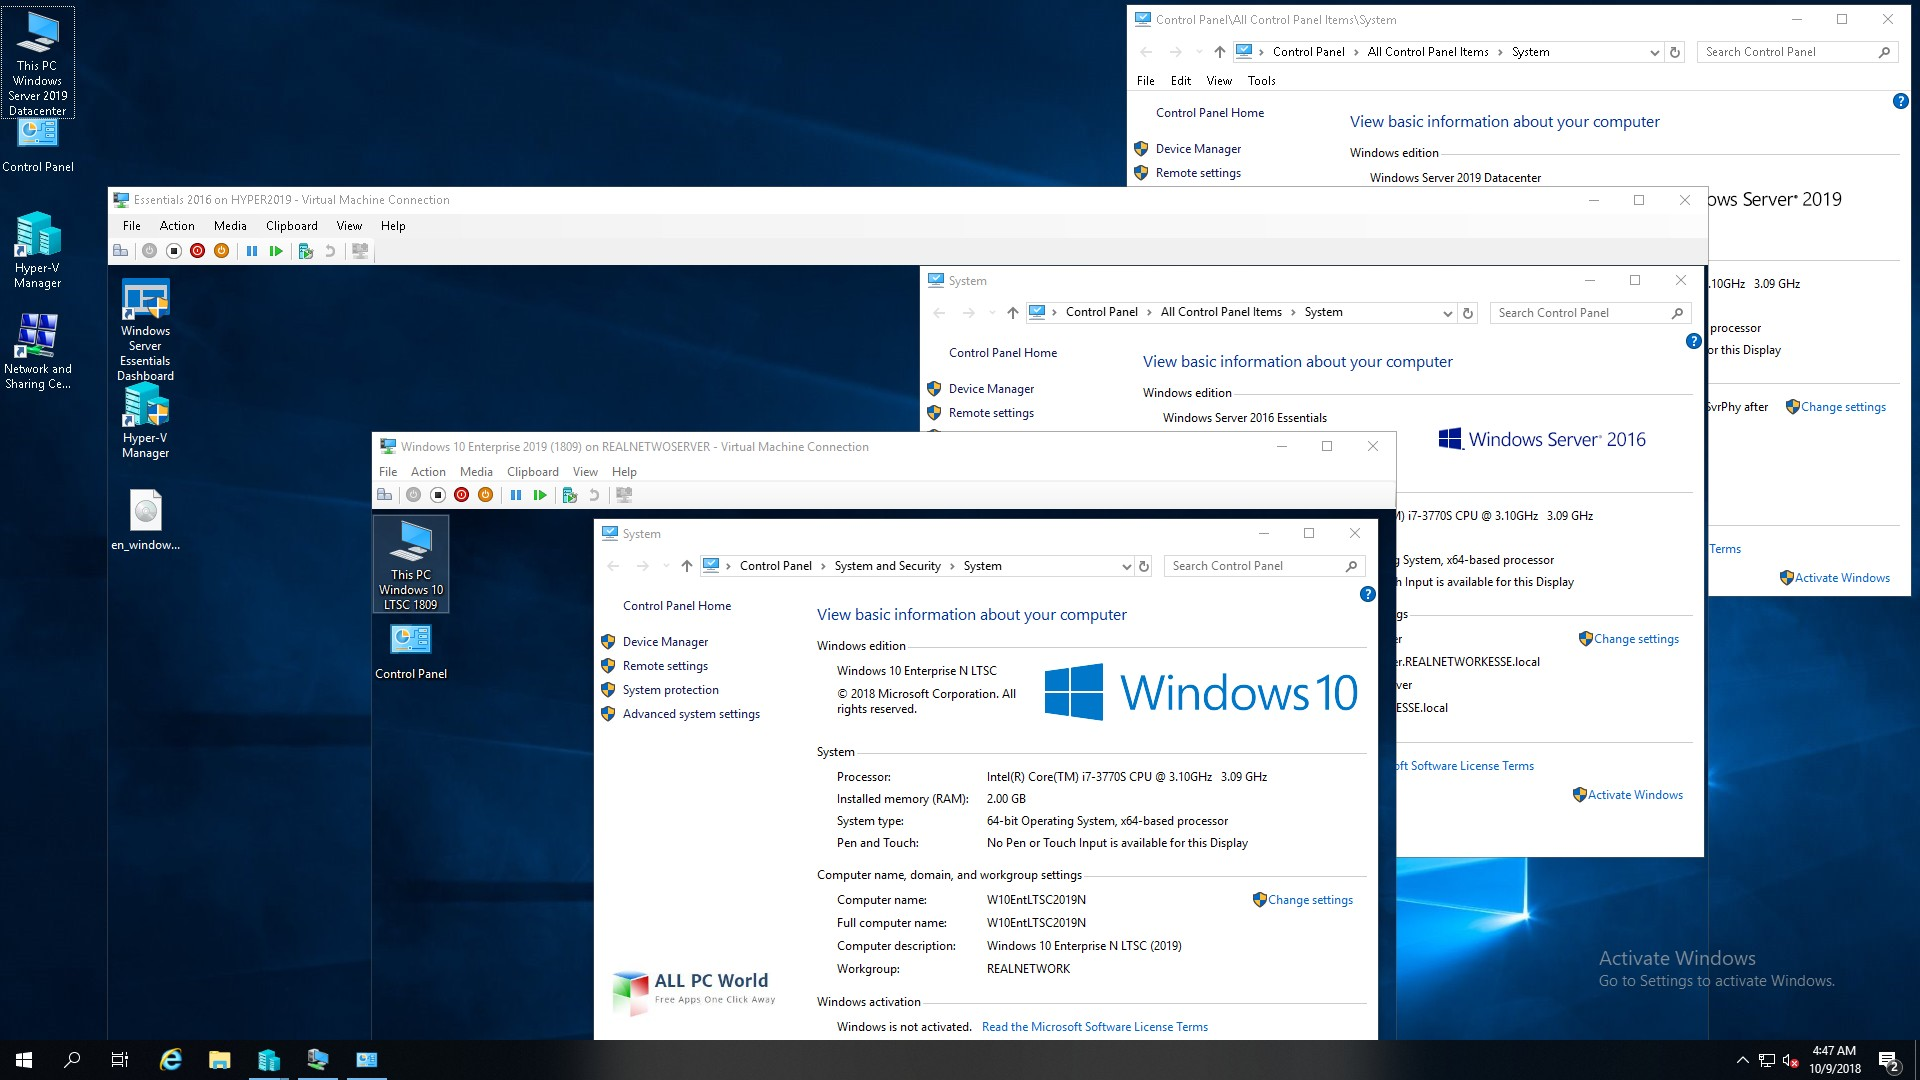 Microsoft Windows 10 LTSC Enterprise, February 2019